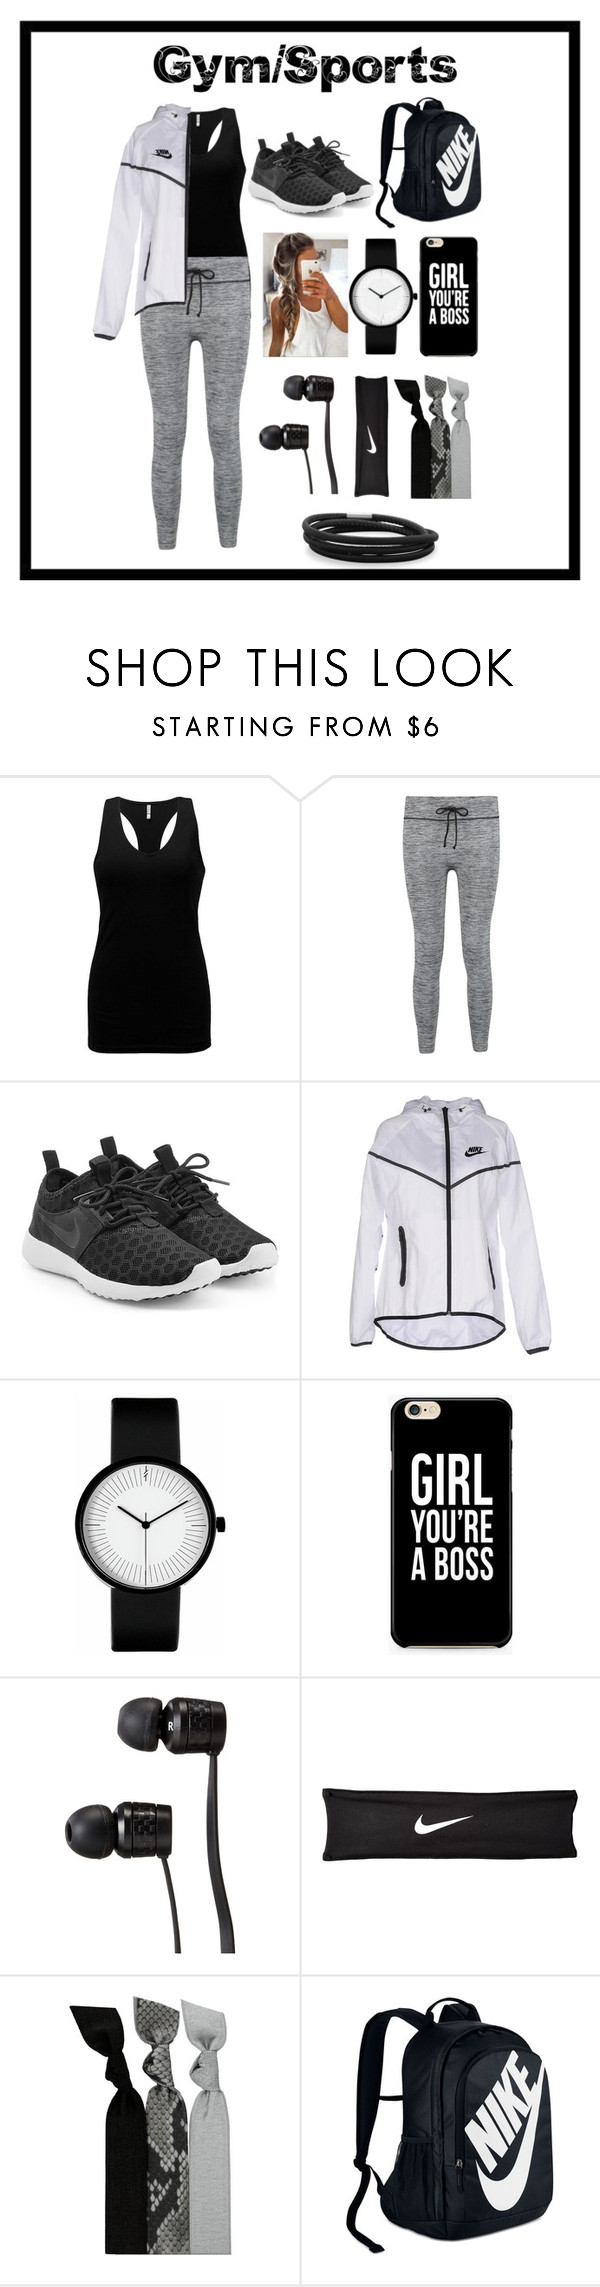 """Gym/Sports Outfit #88"" by stylelover03 ❤ liked on Polyvore featuring BKE, NIKE, Vans, Emi-Jay and BillyTheTree"